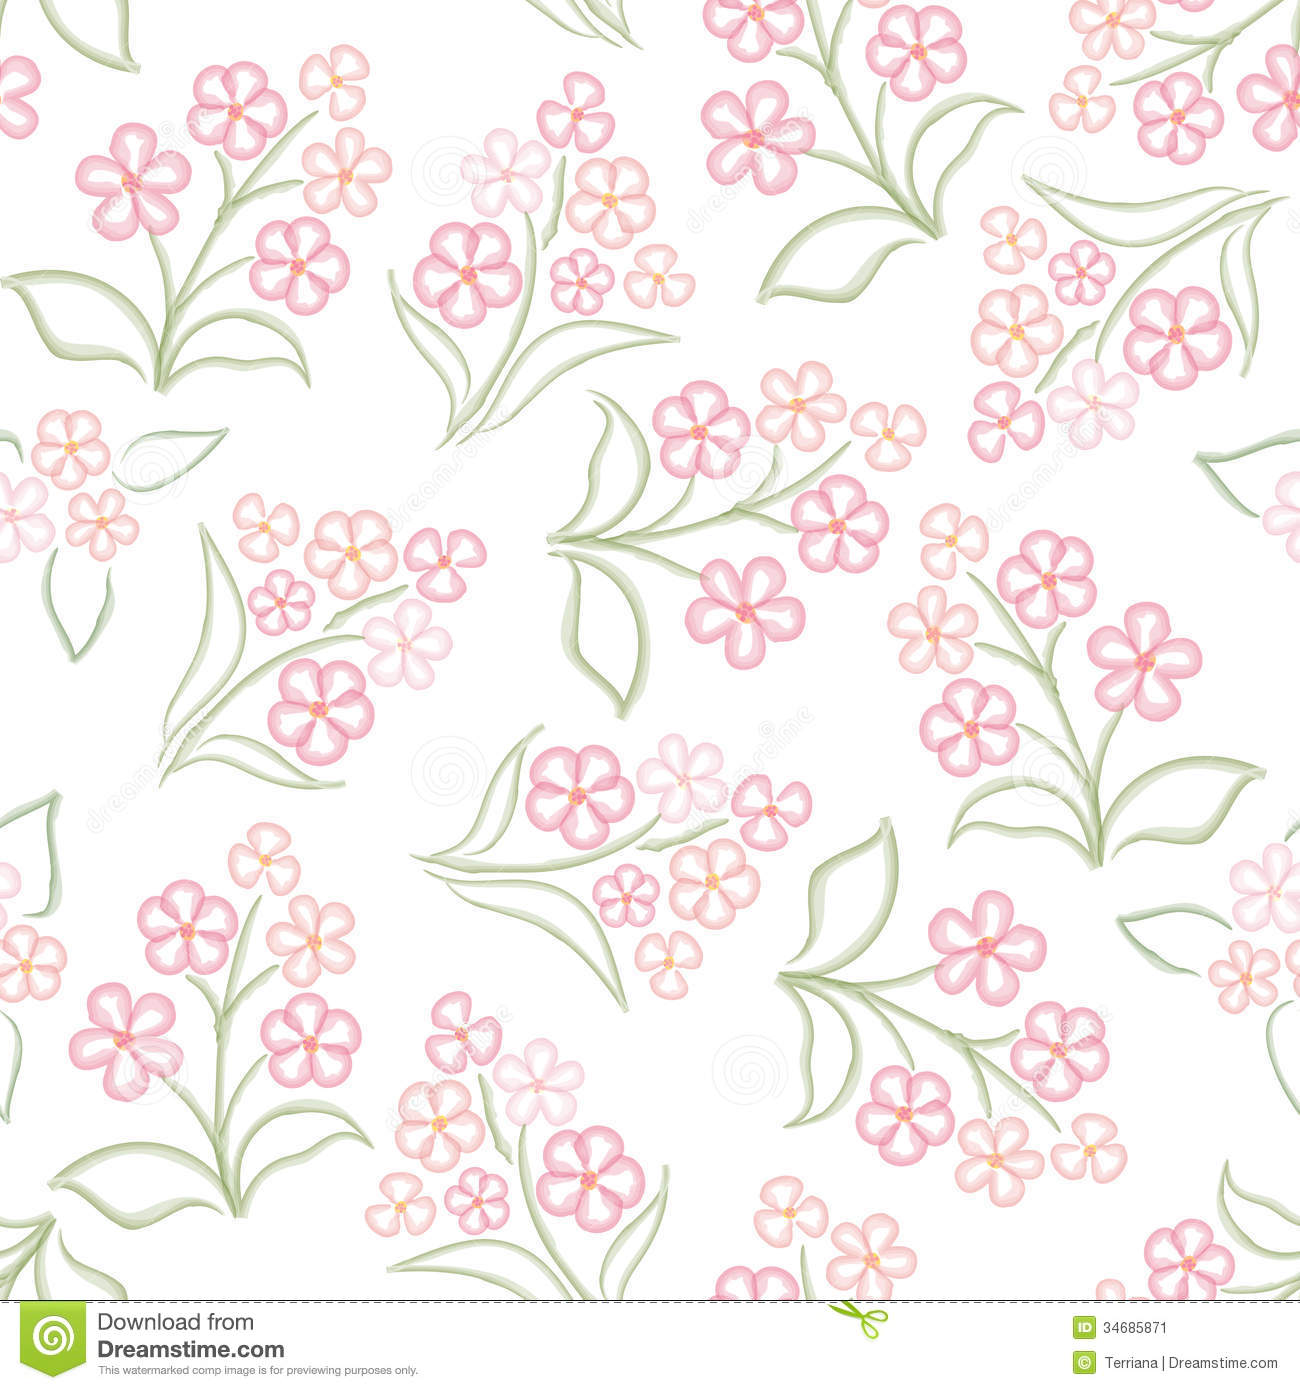 Pink floral seamless vector background floral hrysanthemum seamless - Abstract Background Floral Flower Pattern Pink Seamless